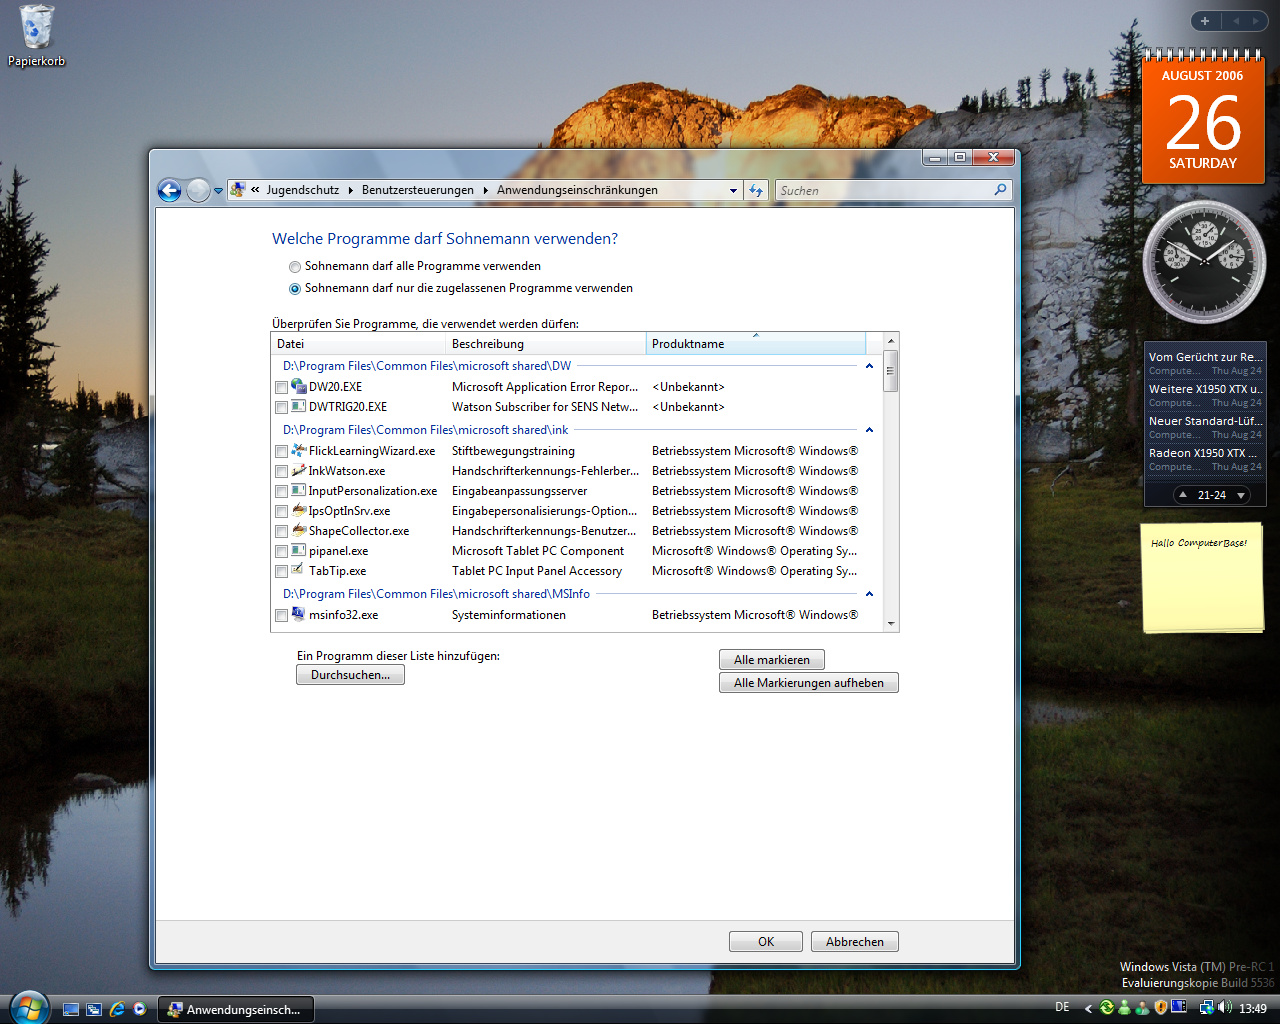 Windows Vista Build 5536 - Jugendschutz 6